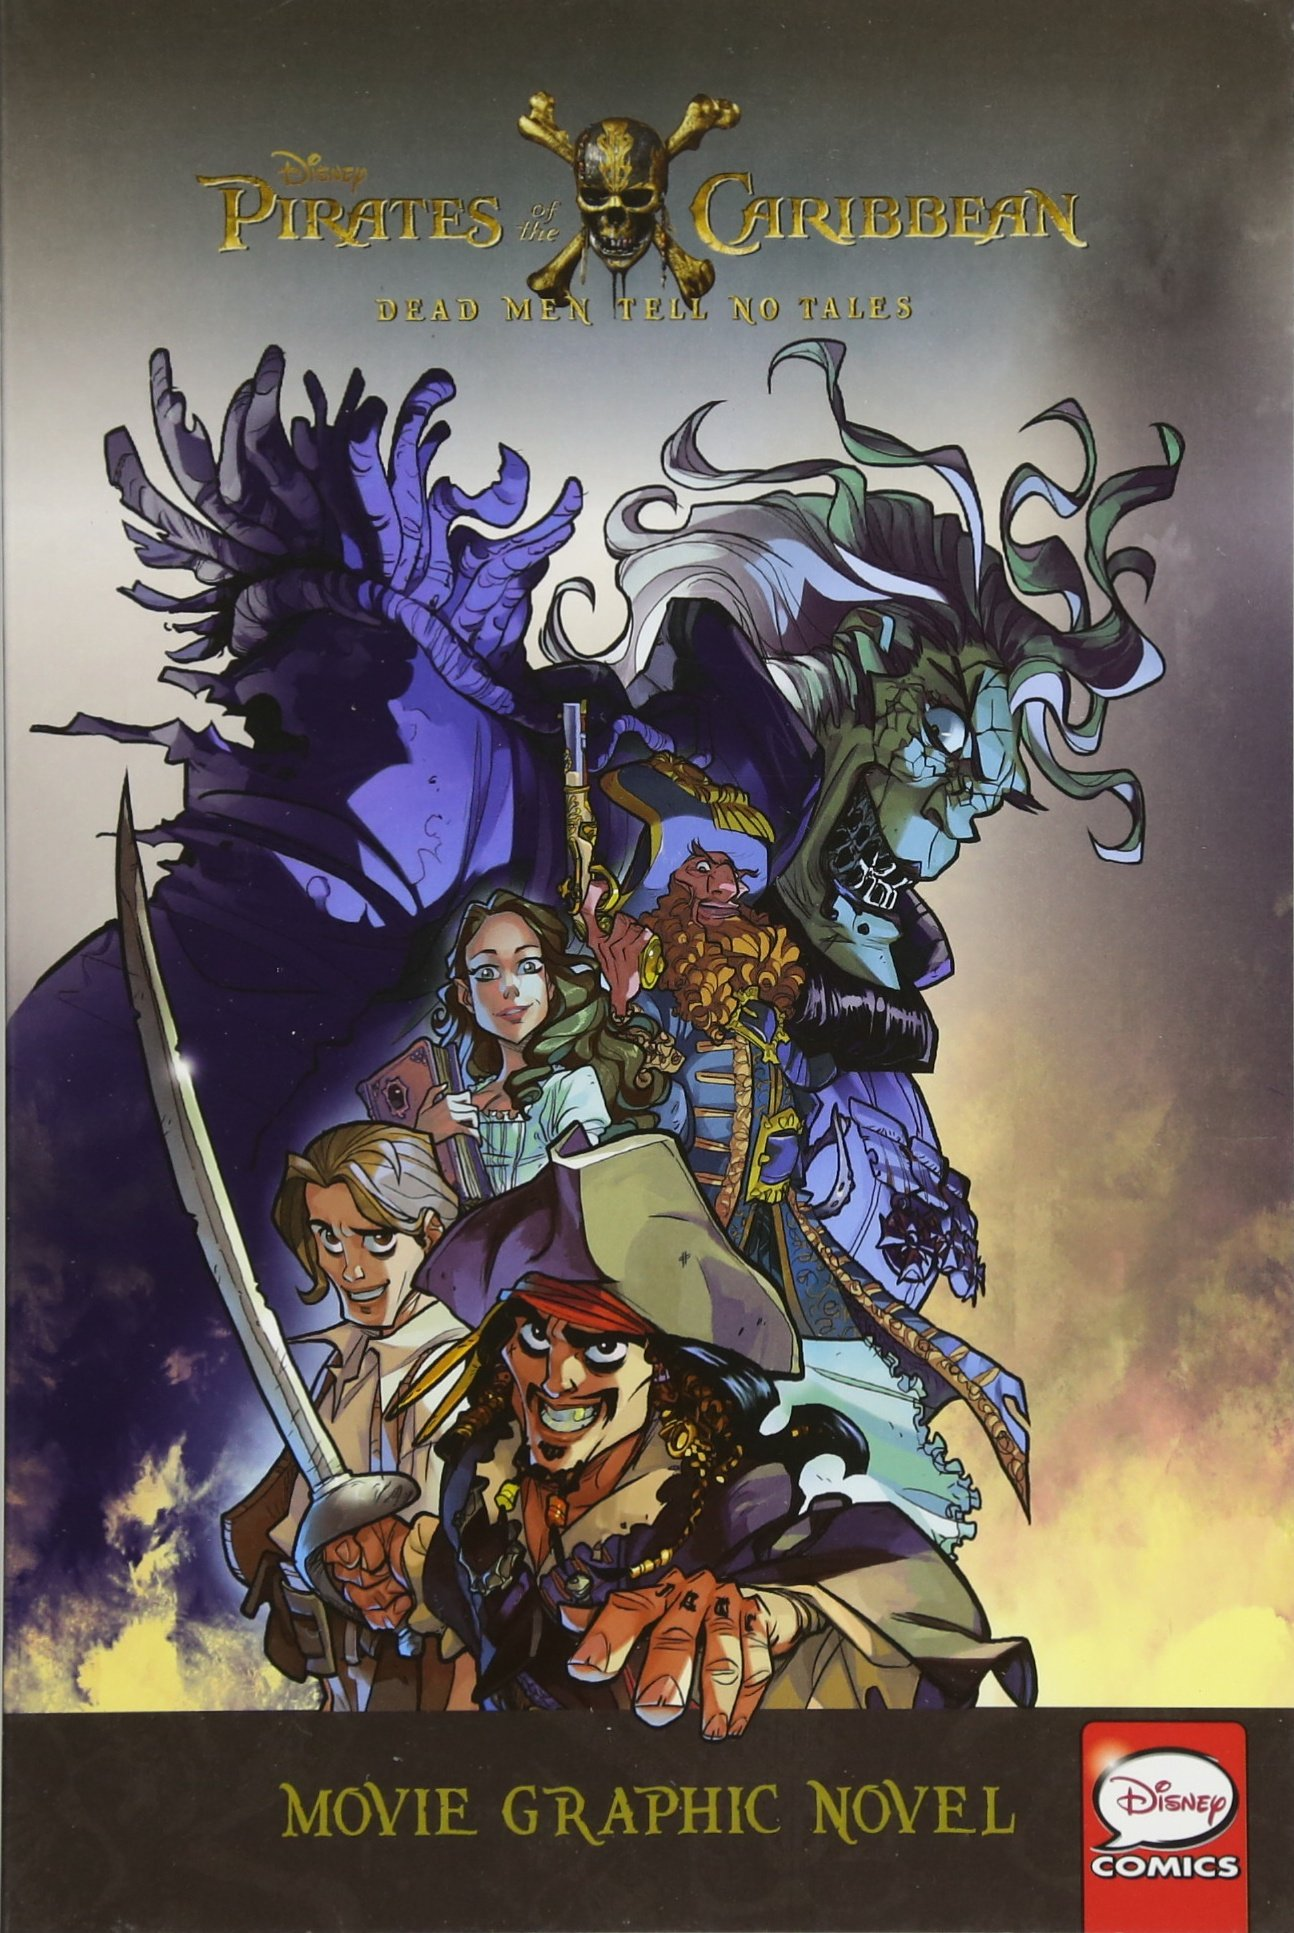 Disney Pirates of the Caribbean: Dead Men Tell No Tales Movie Graphic Novel